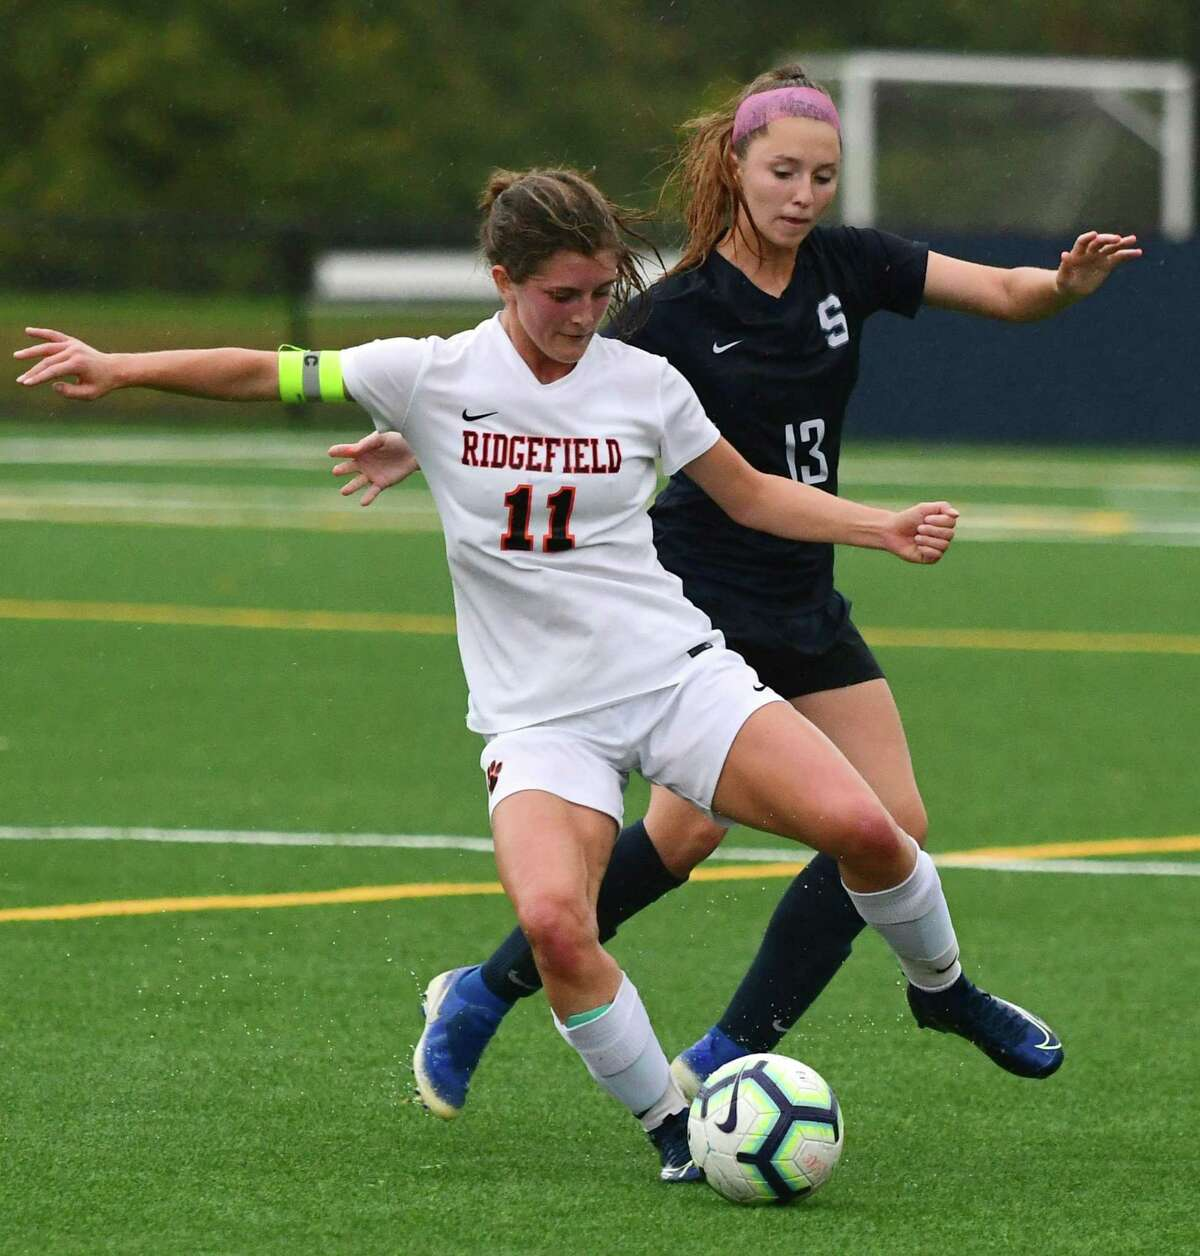 Tiger #11Caitlin Slaminko and Wrecker #13 Alexa Frost battle for the ball as The Staples High School Wreckers takes on the Ridgefield High School Tigers in the FCIAC girls soccer game Wednesday, October 16, 2019, in Westport, Conn.